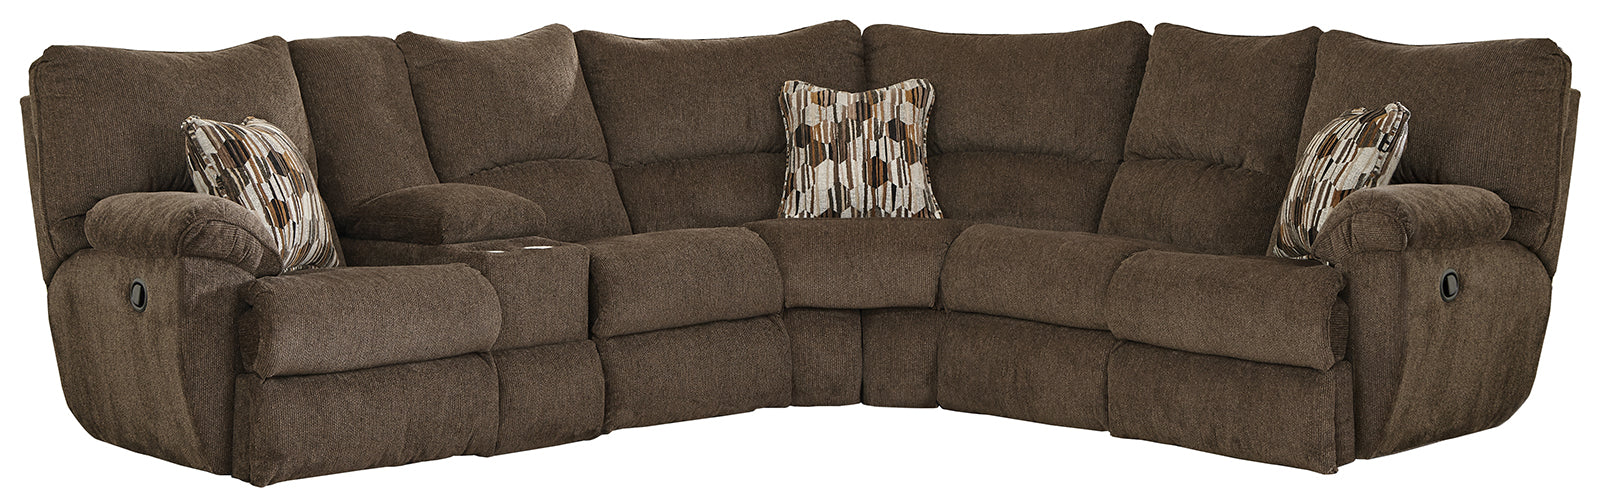 Catnapper Elliott 2pc Lay Flat Reclining Sectional in Chocolate image